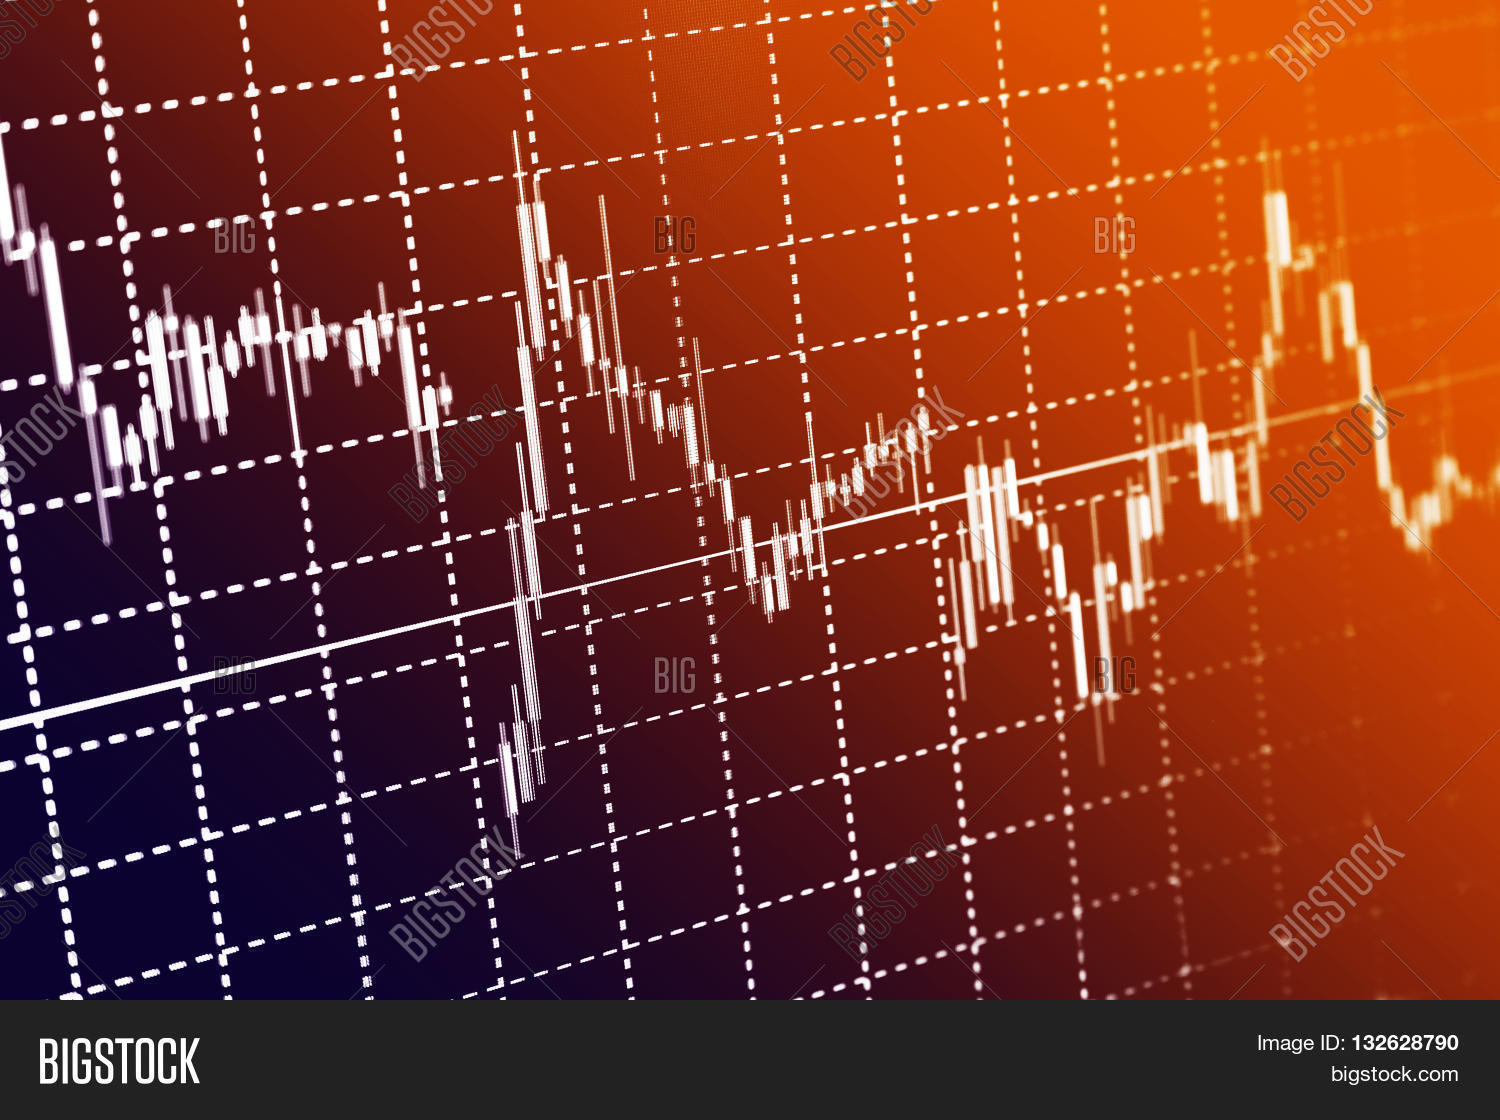 Live Market Quotes | Charts Quotes On Image Photo Free Trial Bigstock